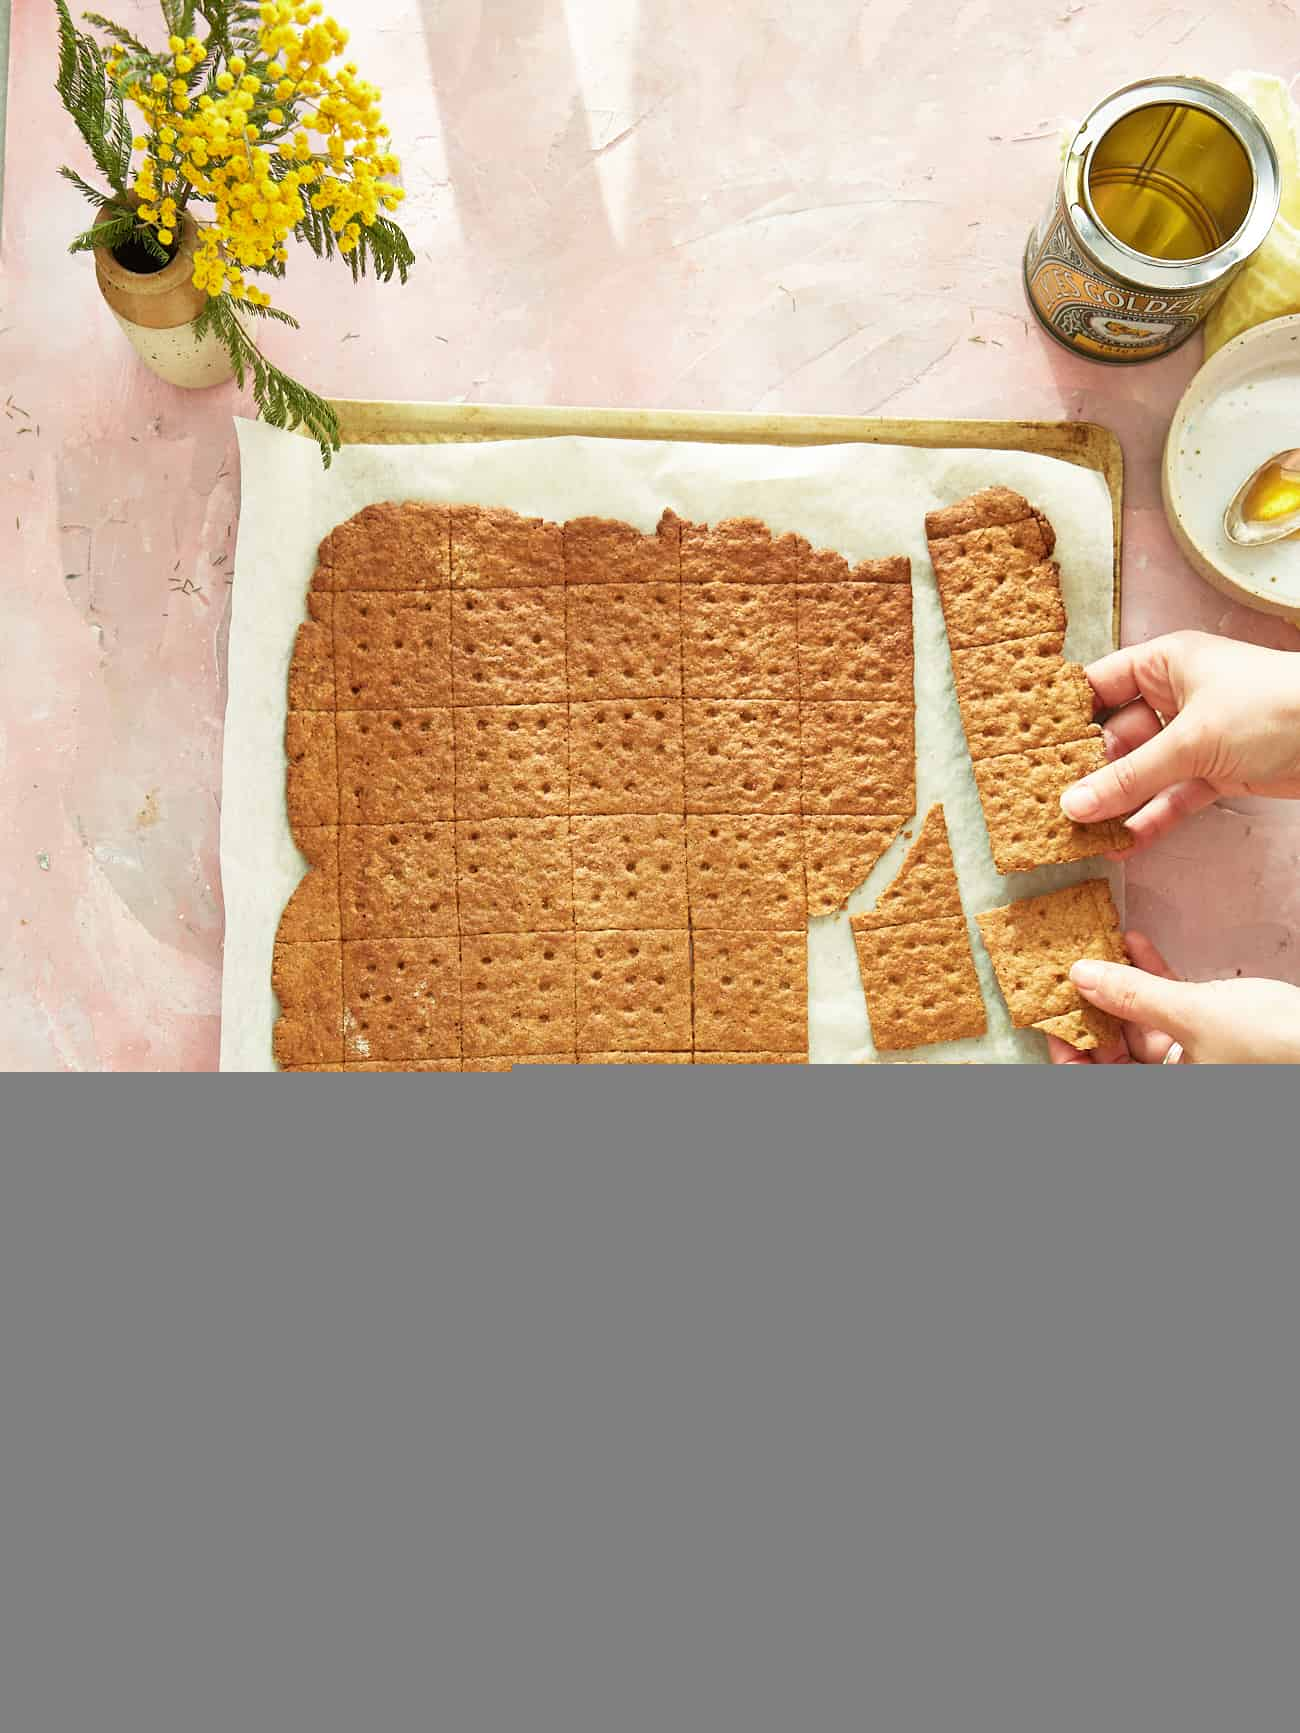 snapping a large homemade graham cracker sheet into smaller crackers